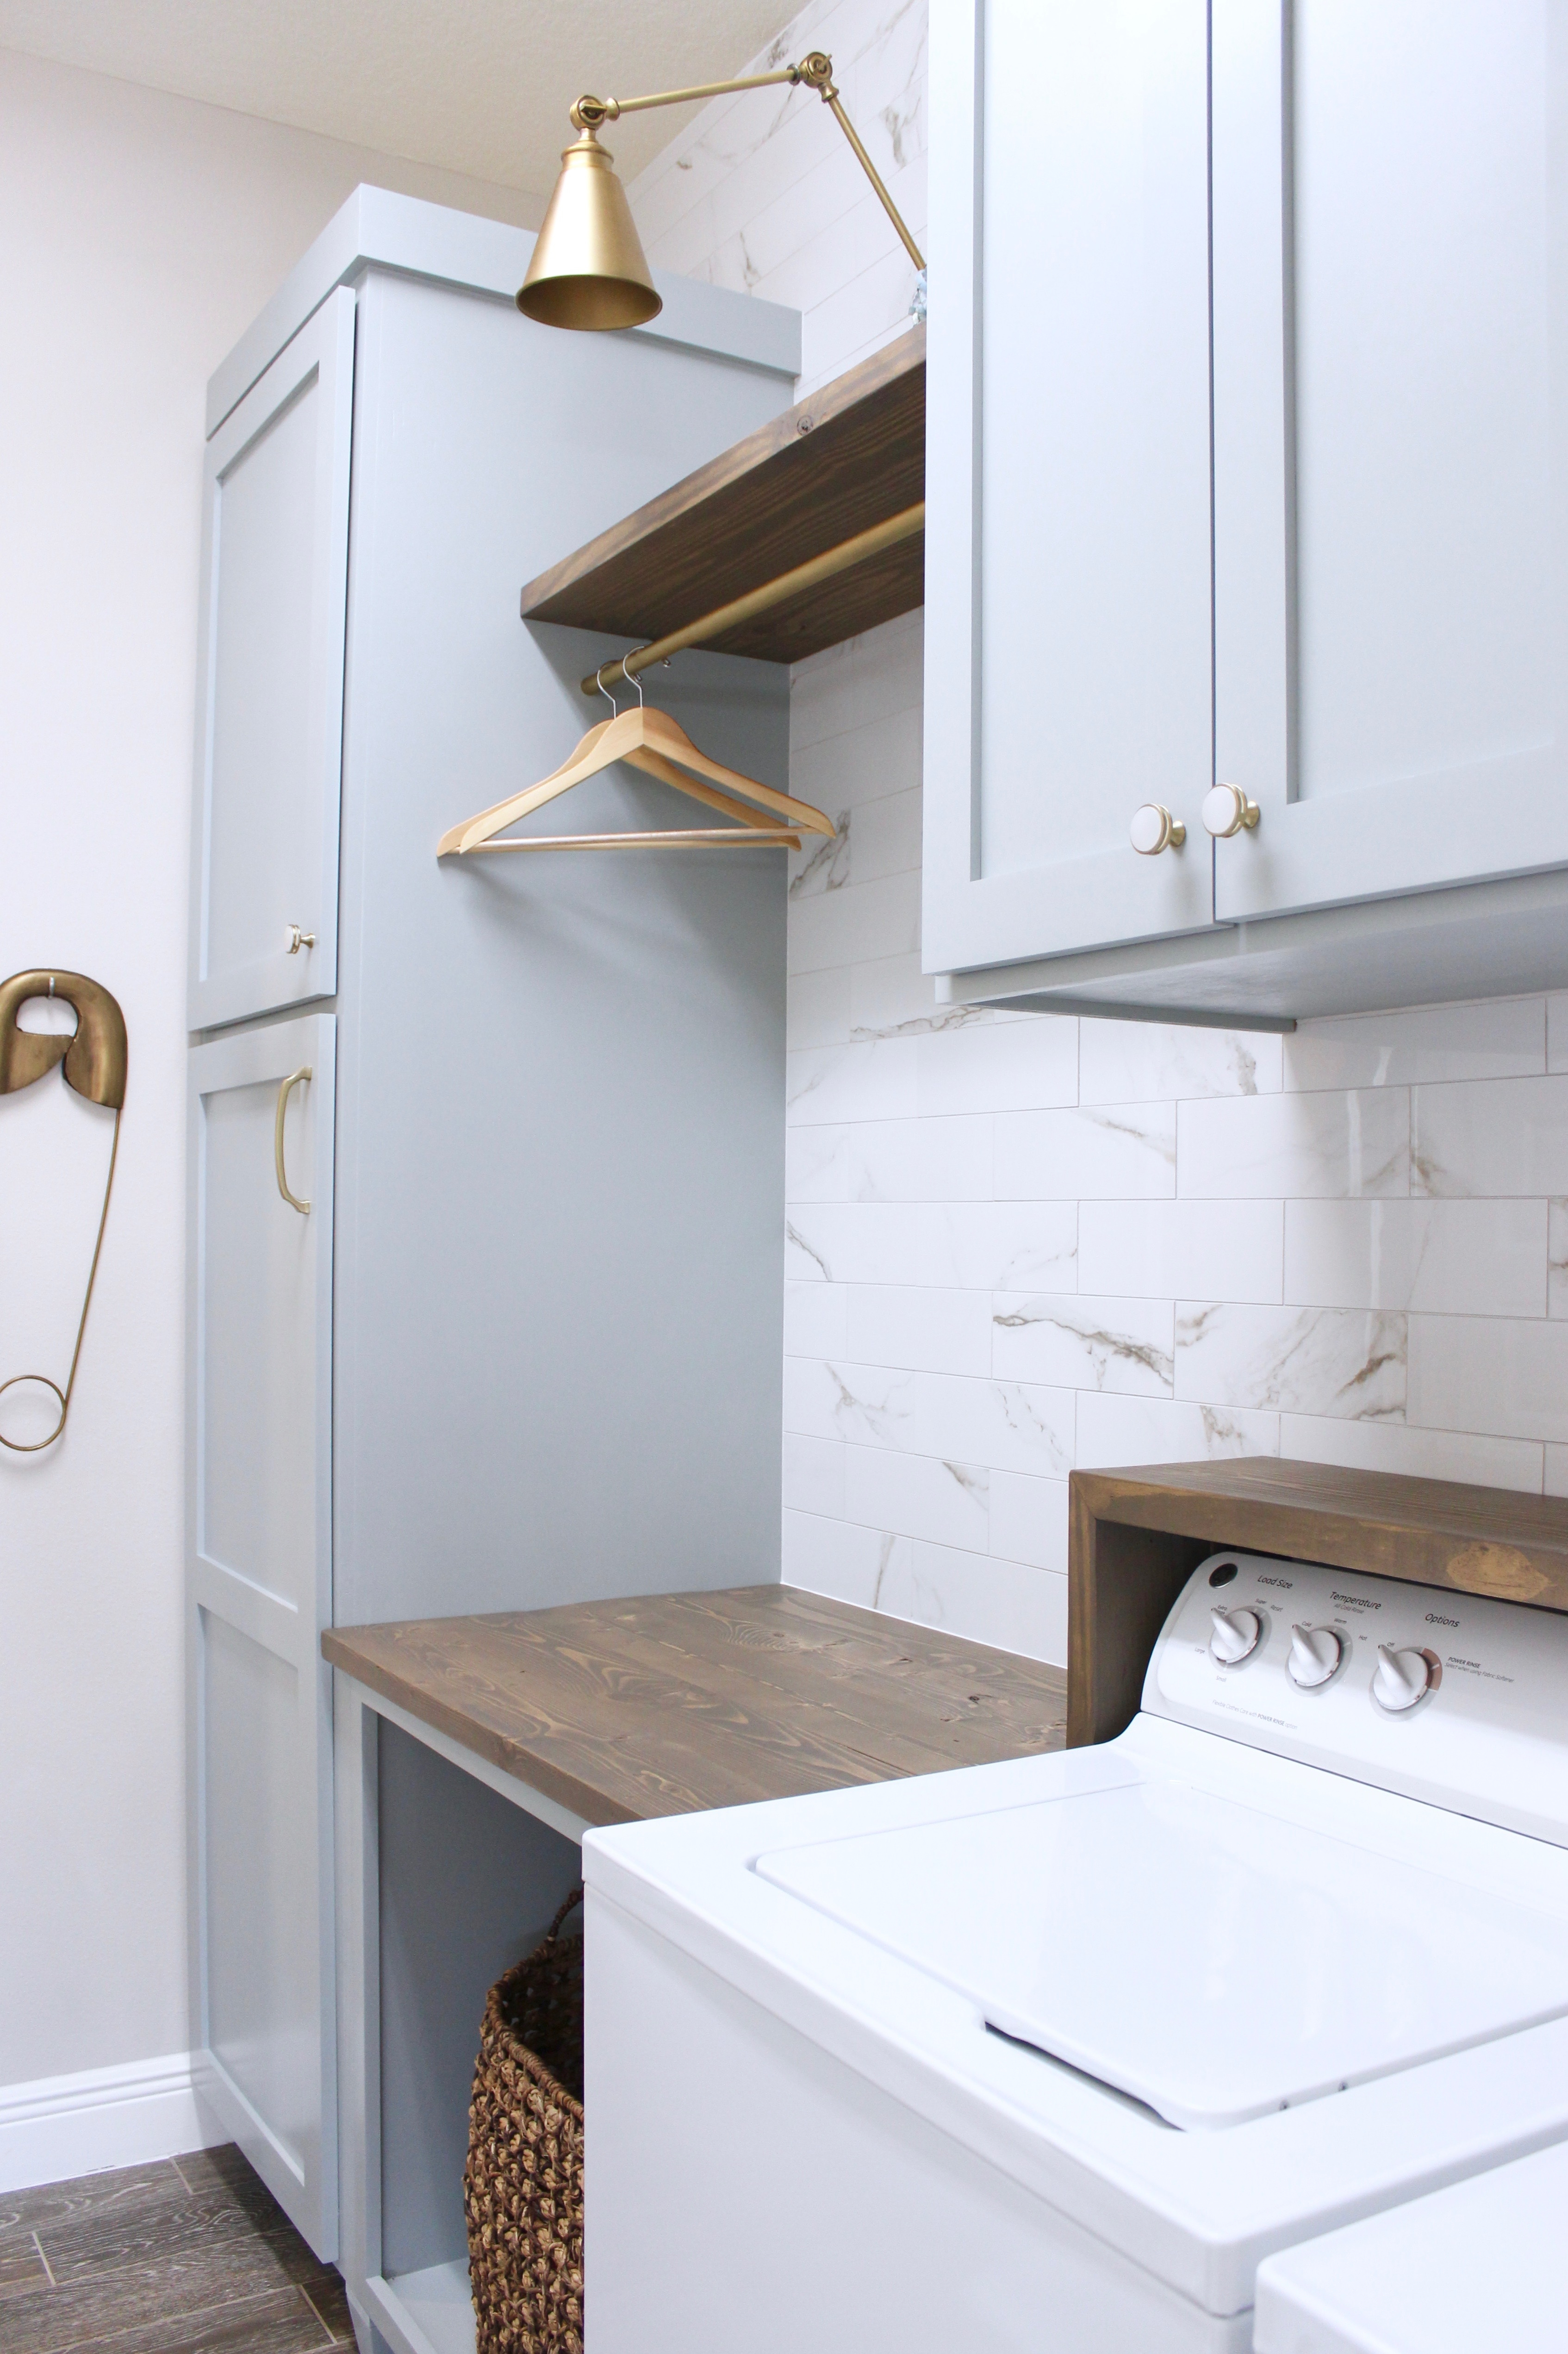 Laundry Room Diy Cabinets Painted Blue Marble Wall Tile Gold Sconce Light Frills And Drills